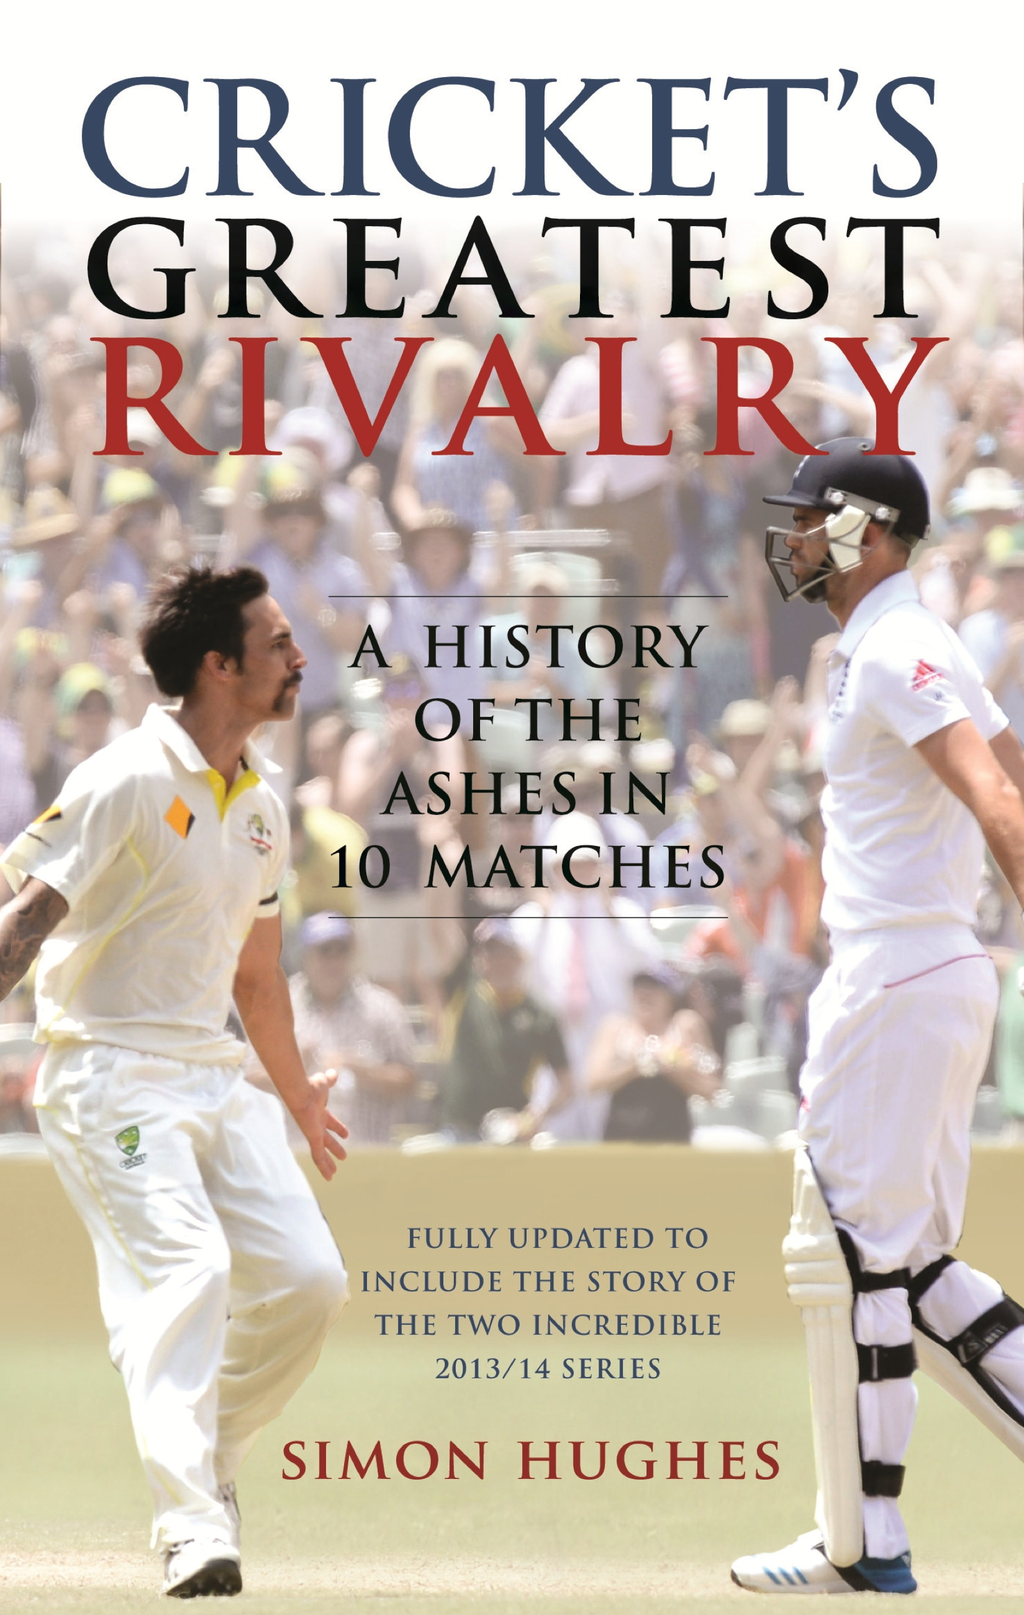 Cricket's Greatest Rivalry A History of the Ashes in 10 Matches